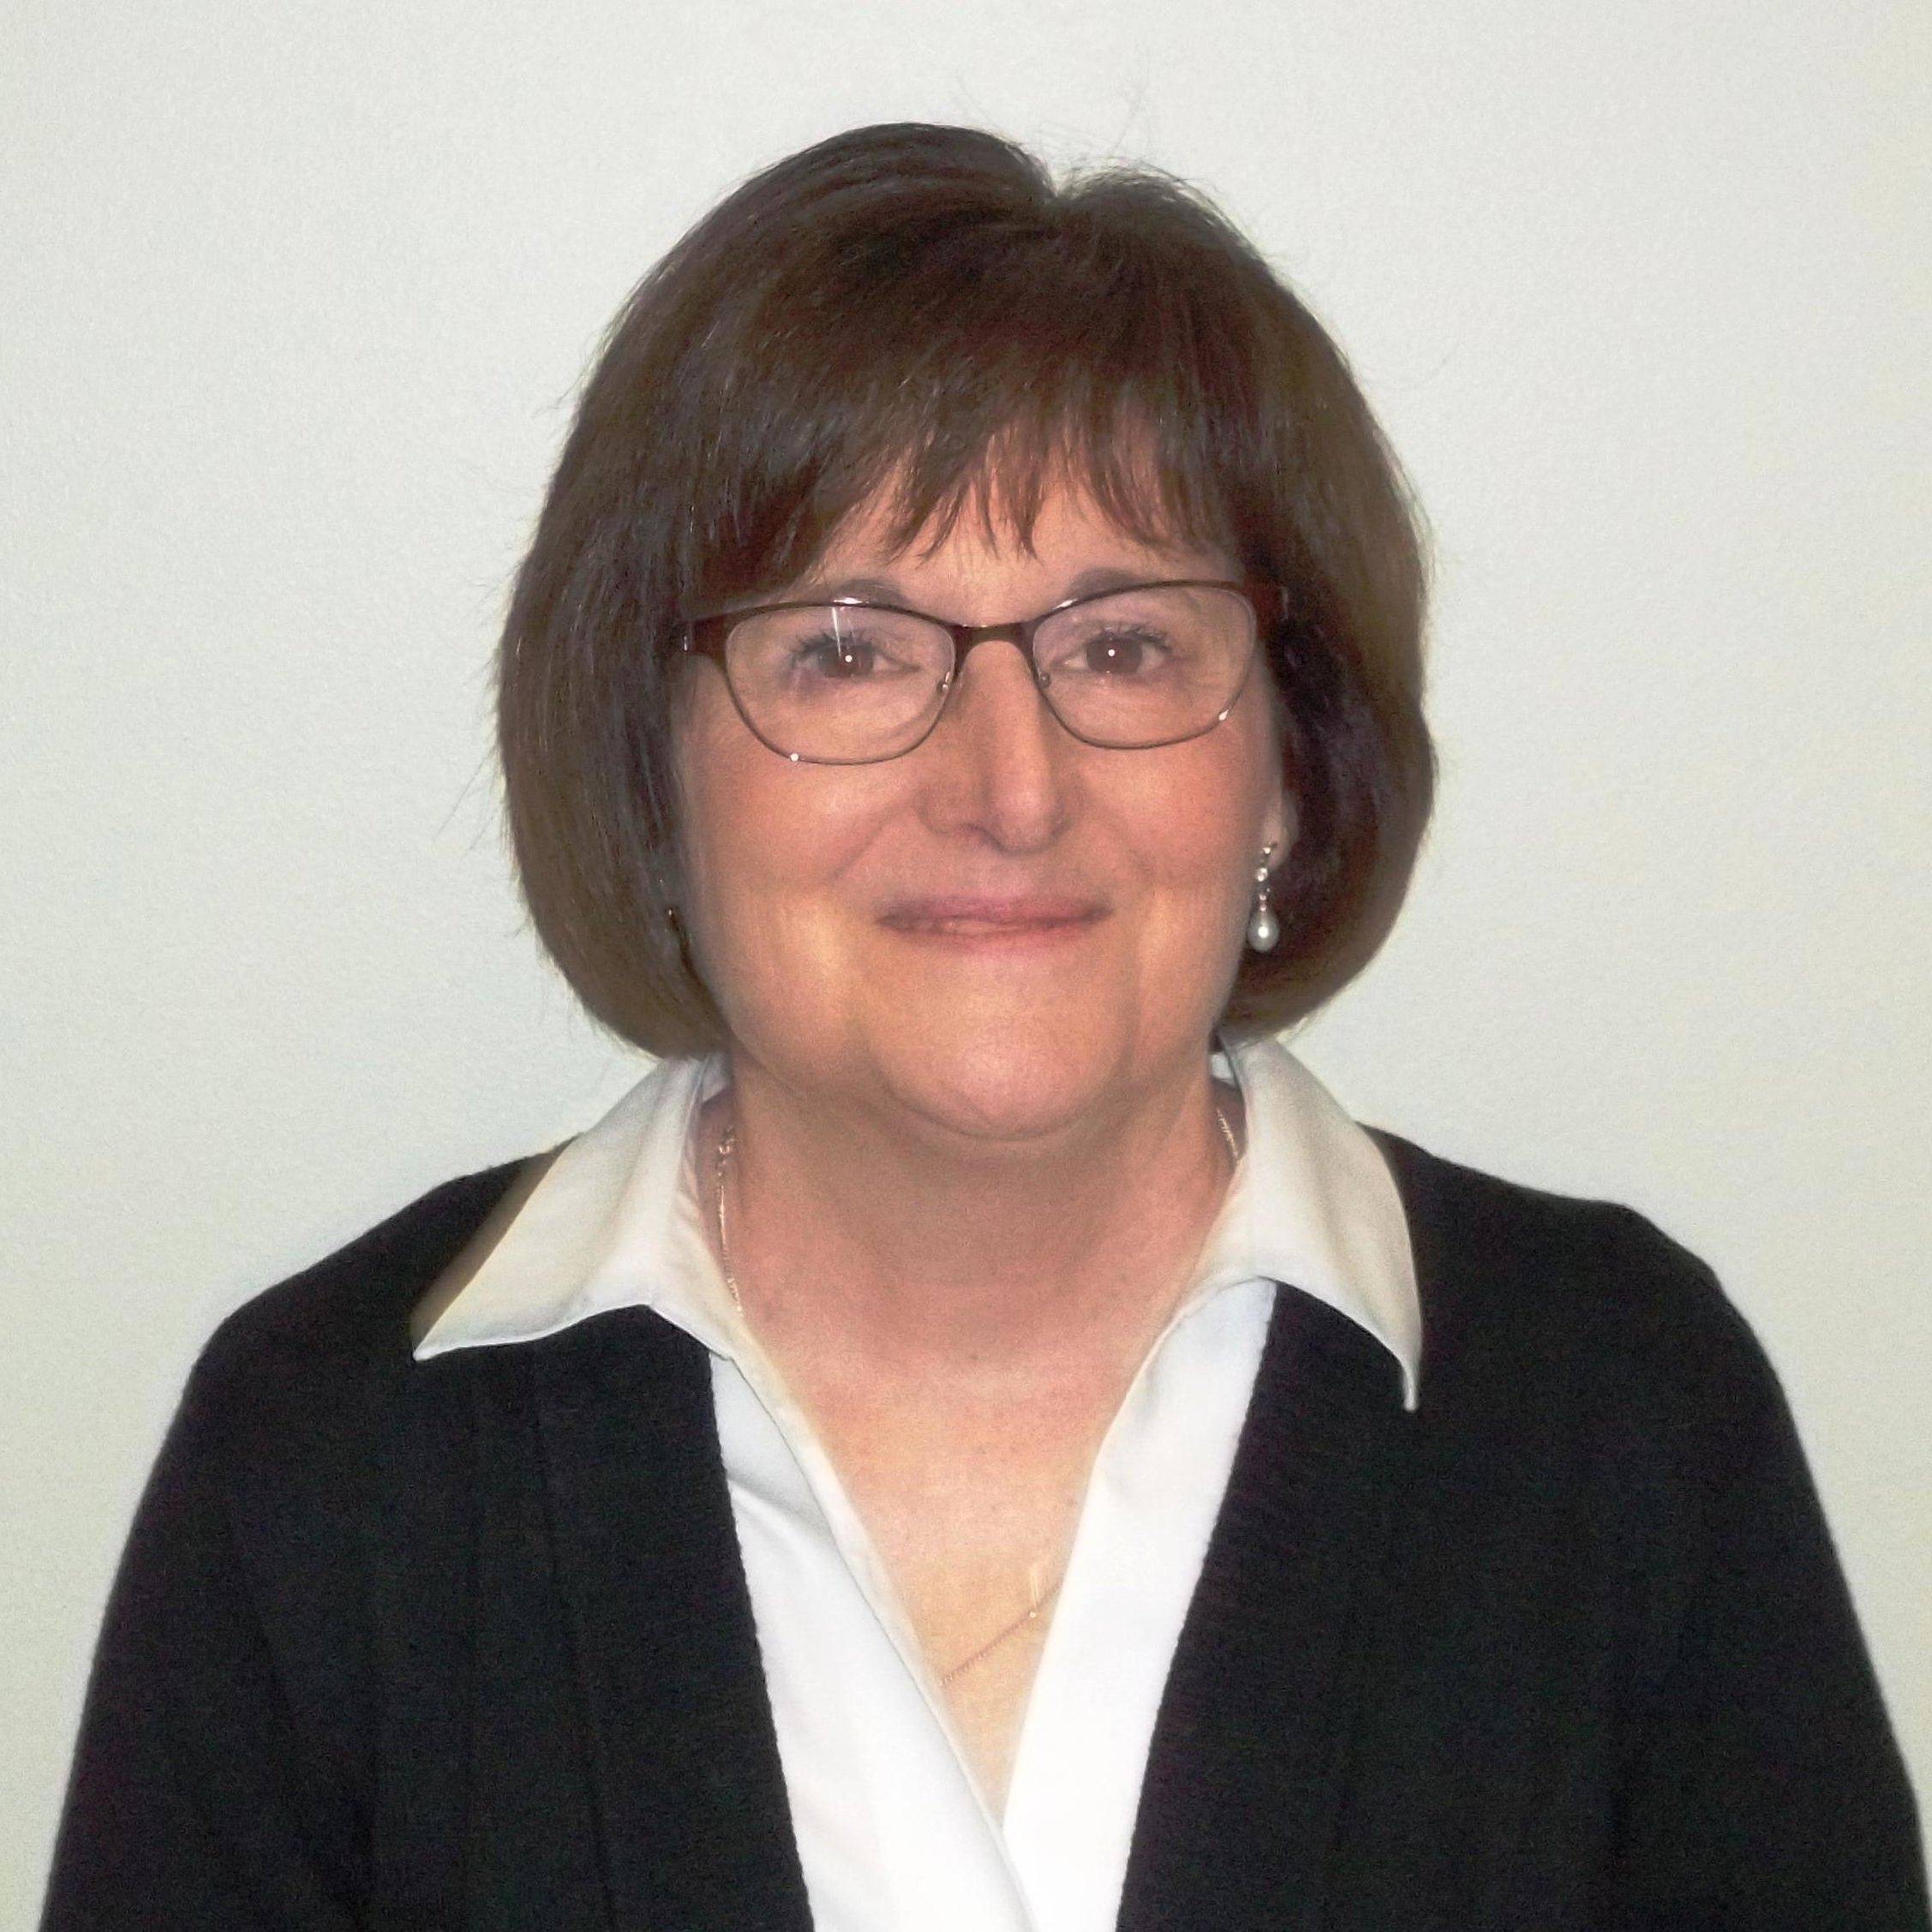 Diane McCarthy, MA, BCCArchdiocese of Boston - Diane McCarthy is the Parish Education Coordinator for the Initiative on Palliative Care & Advance Care Planning. The Archdiocese of Boston has been a member of the Supportive Care Coalition since 2015.